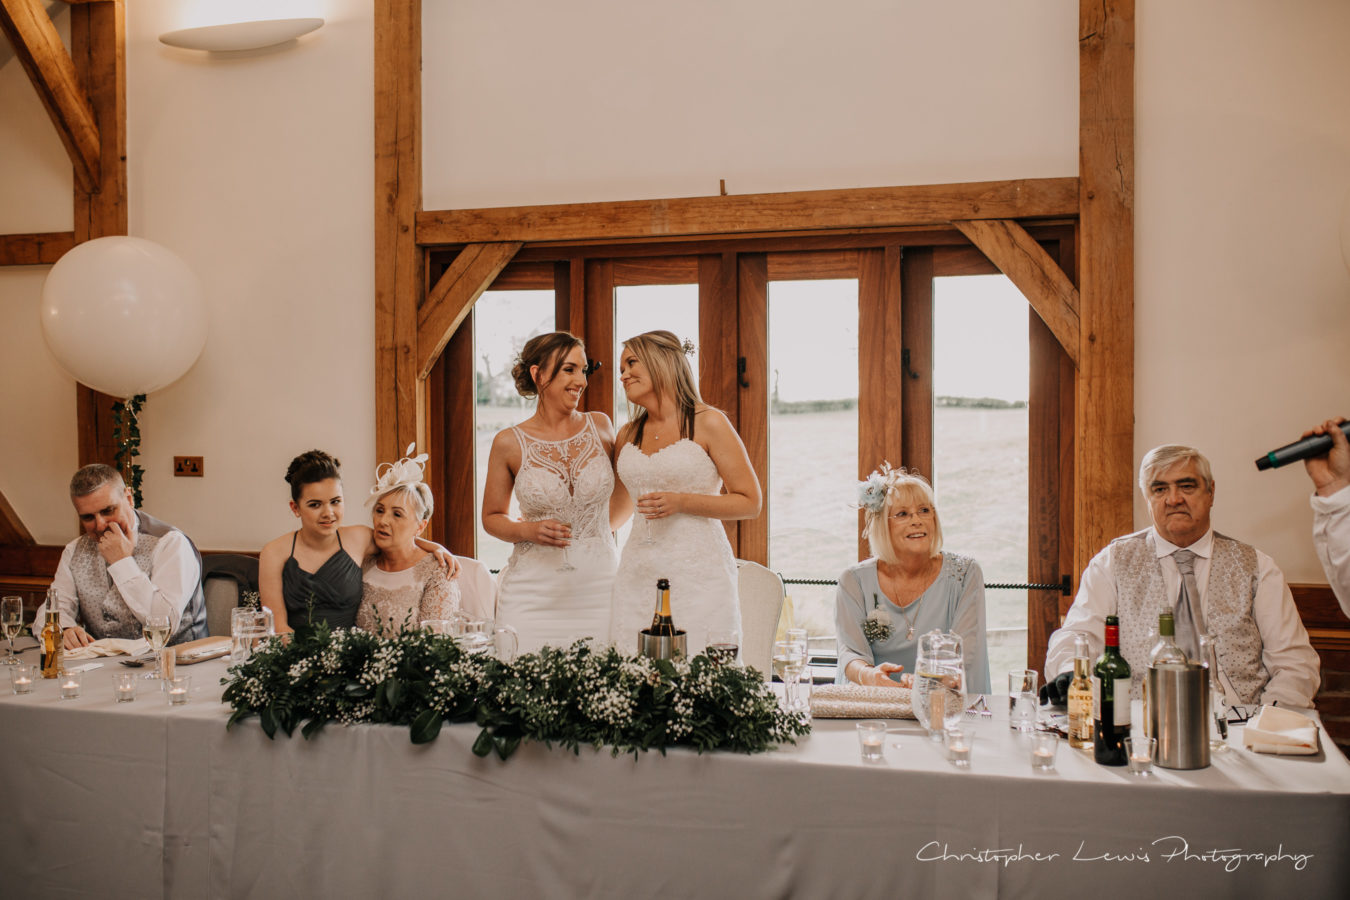 Sandhole-Oak-Barn-Wedding-Christopher-Lewis-Photography- 49